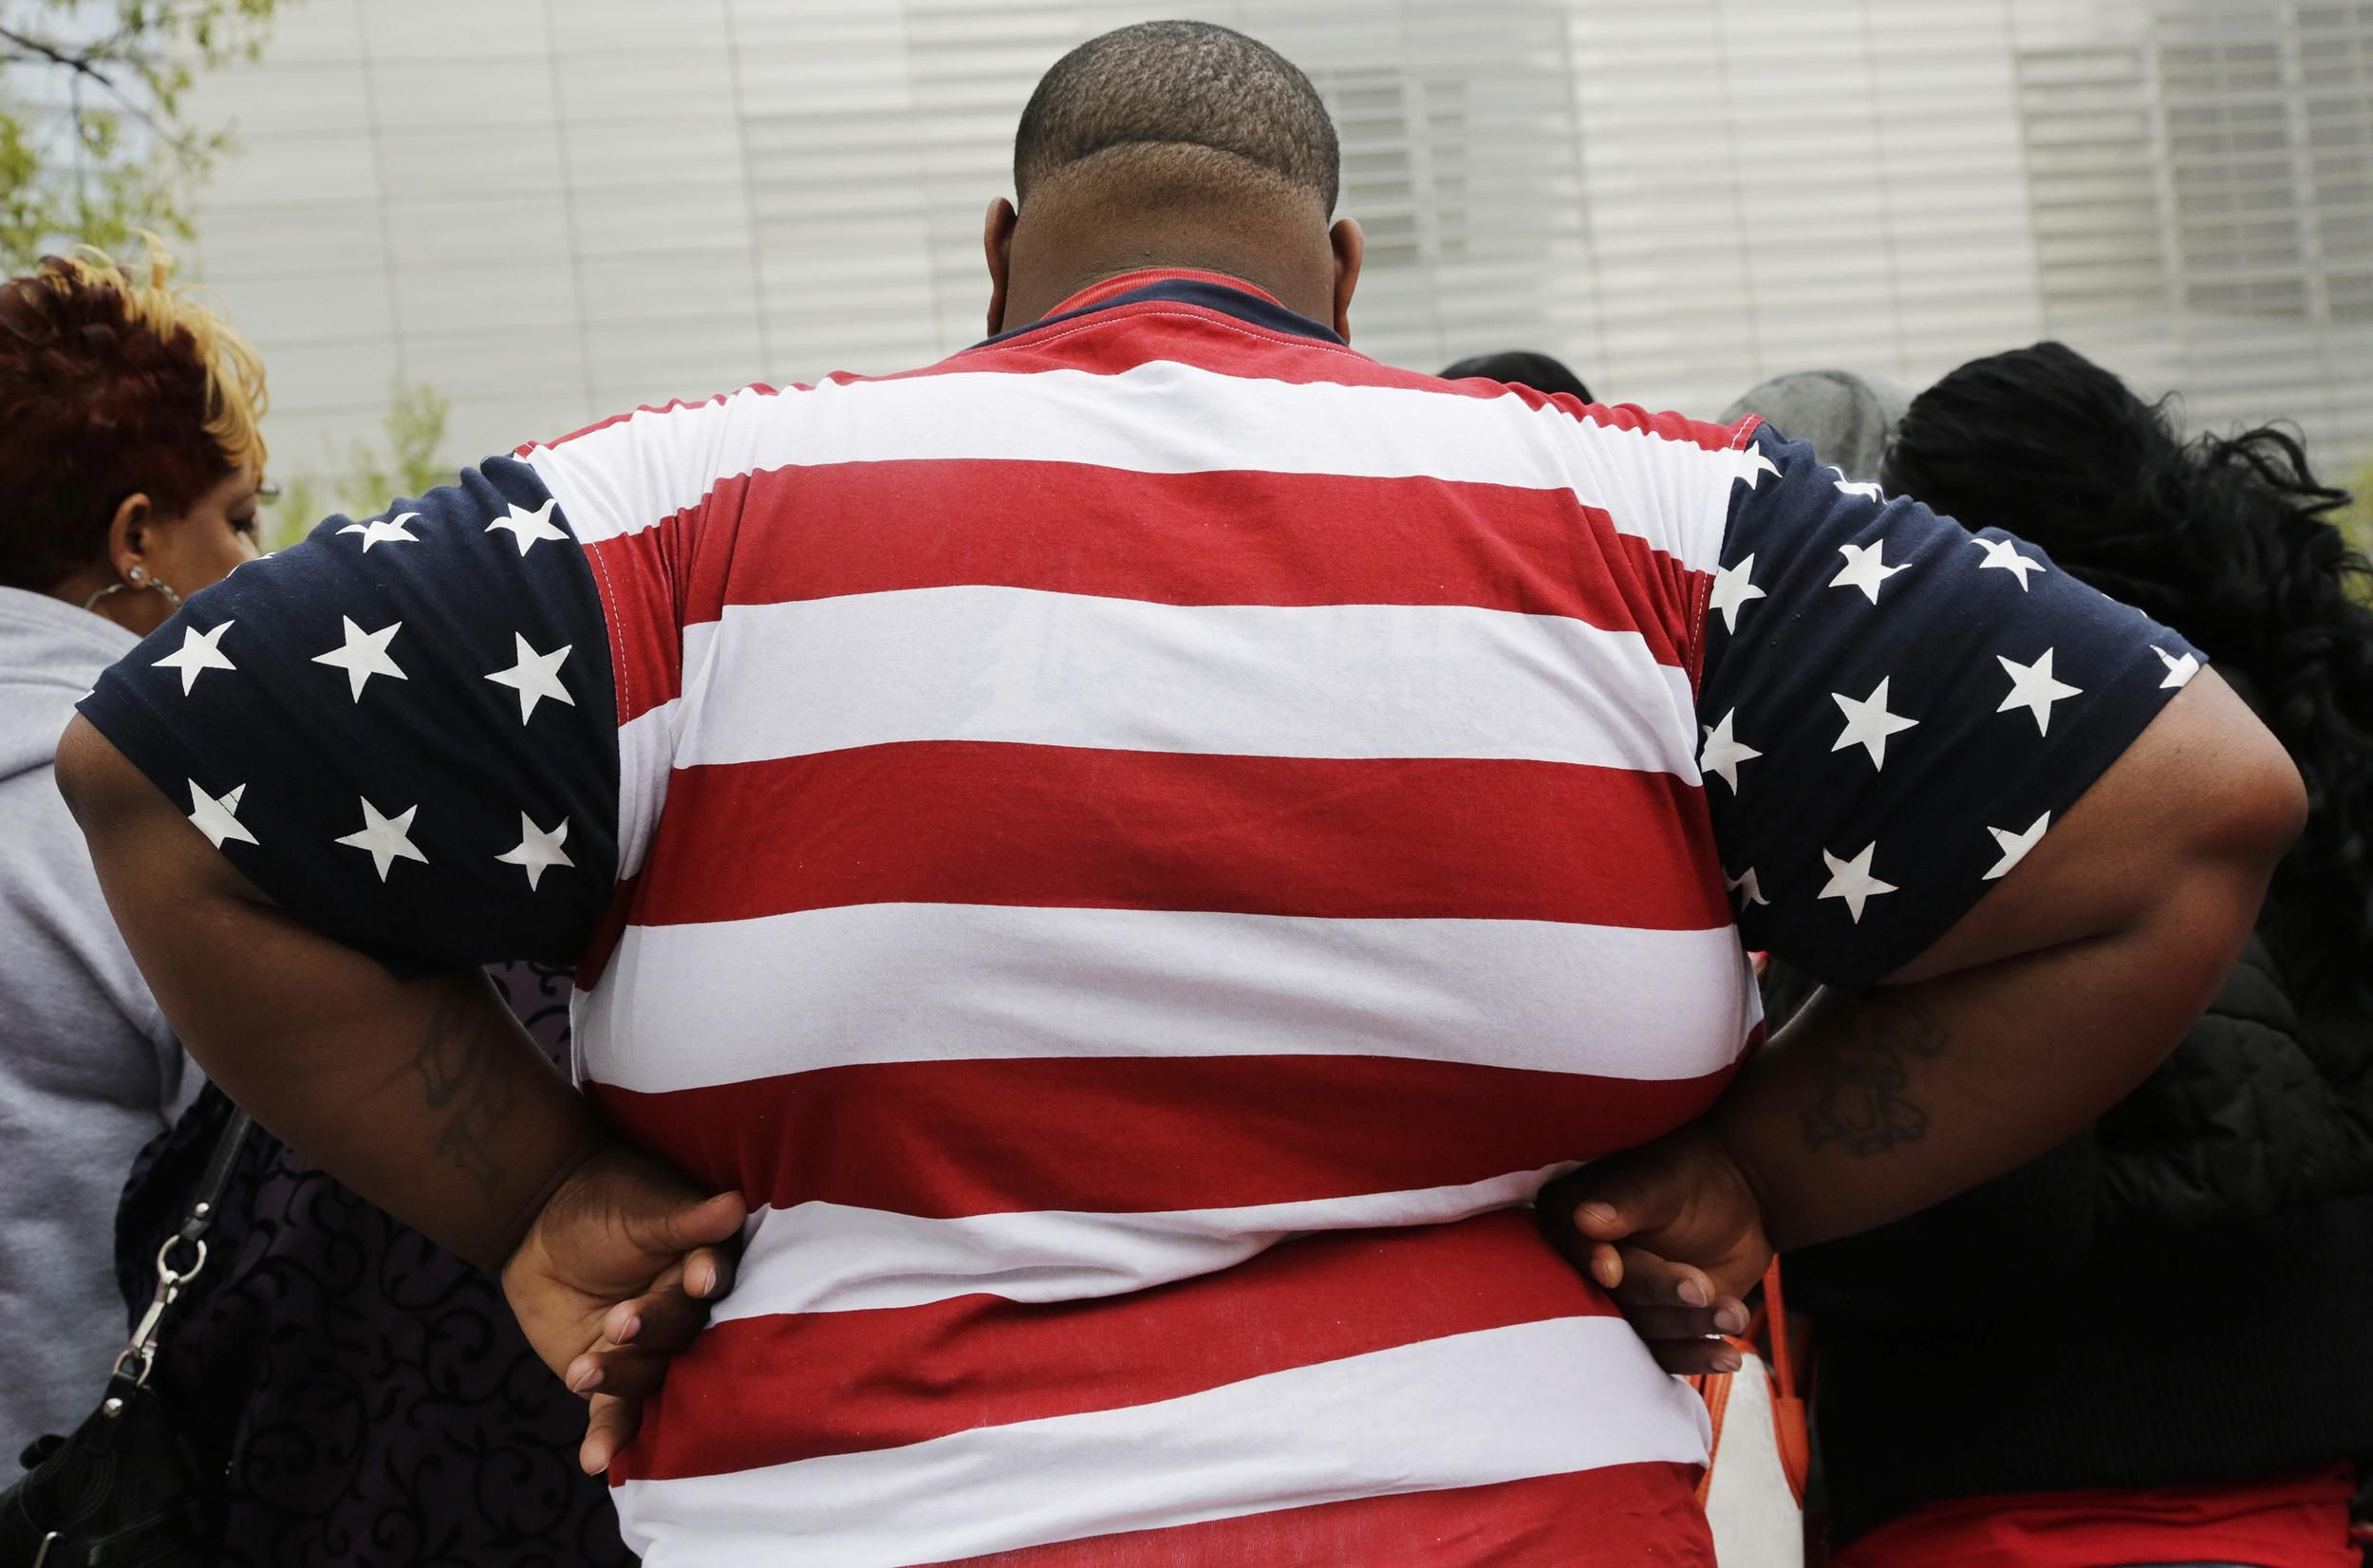 The World's 15 Fattest Countries In 2015